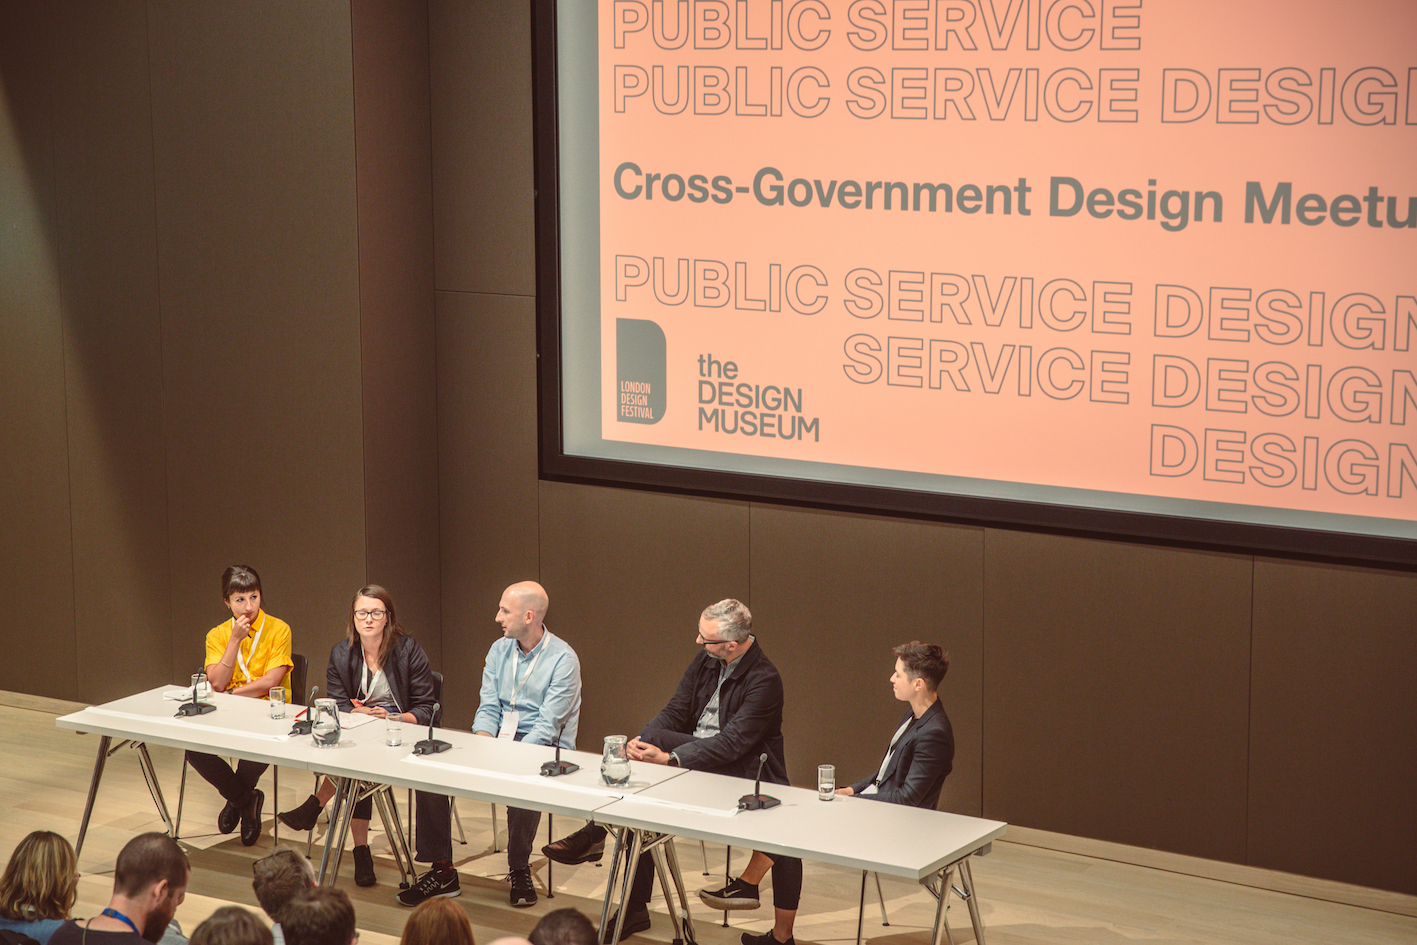 Five people sitting at a table in front of a screen saying 'Cross-Government Design Meetup'